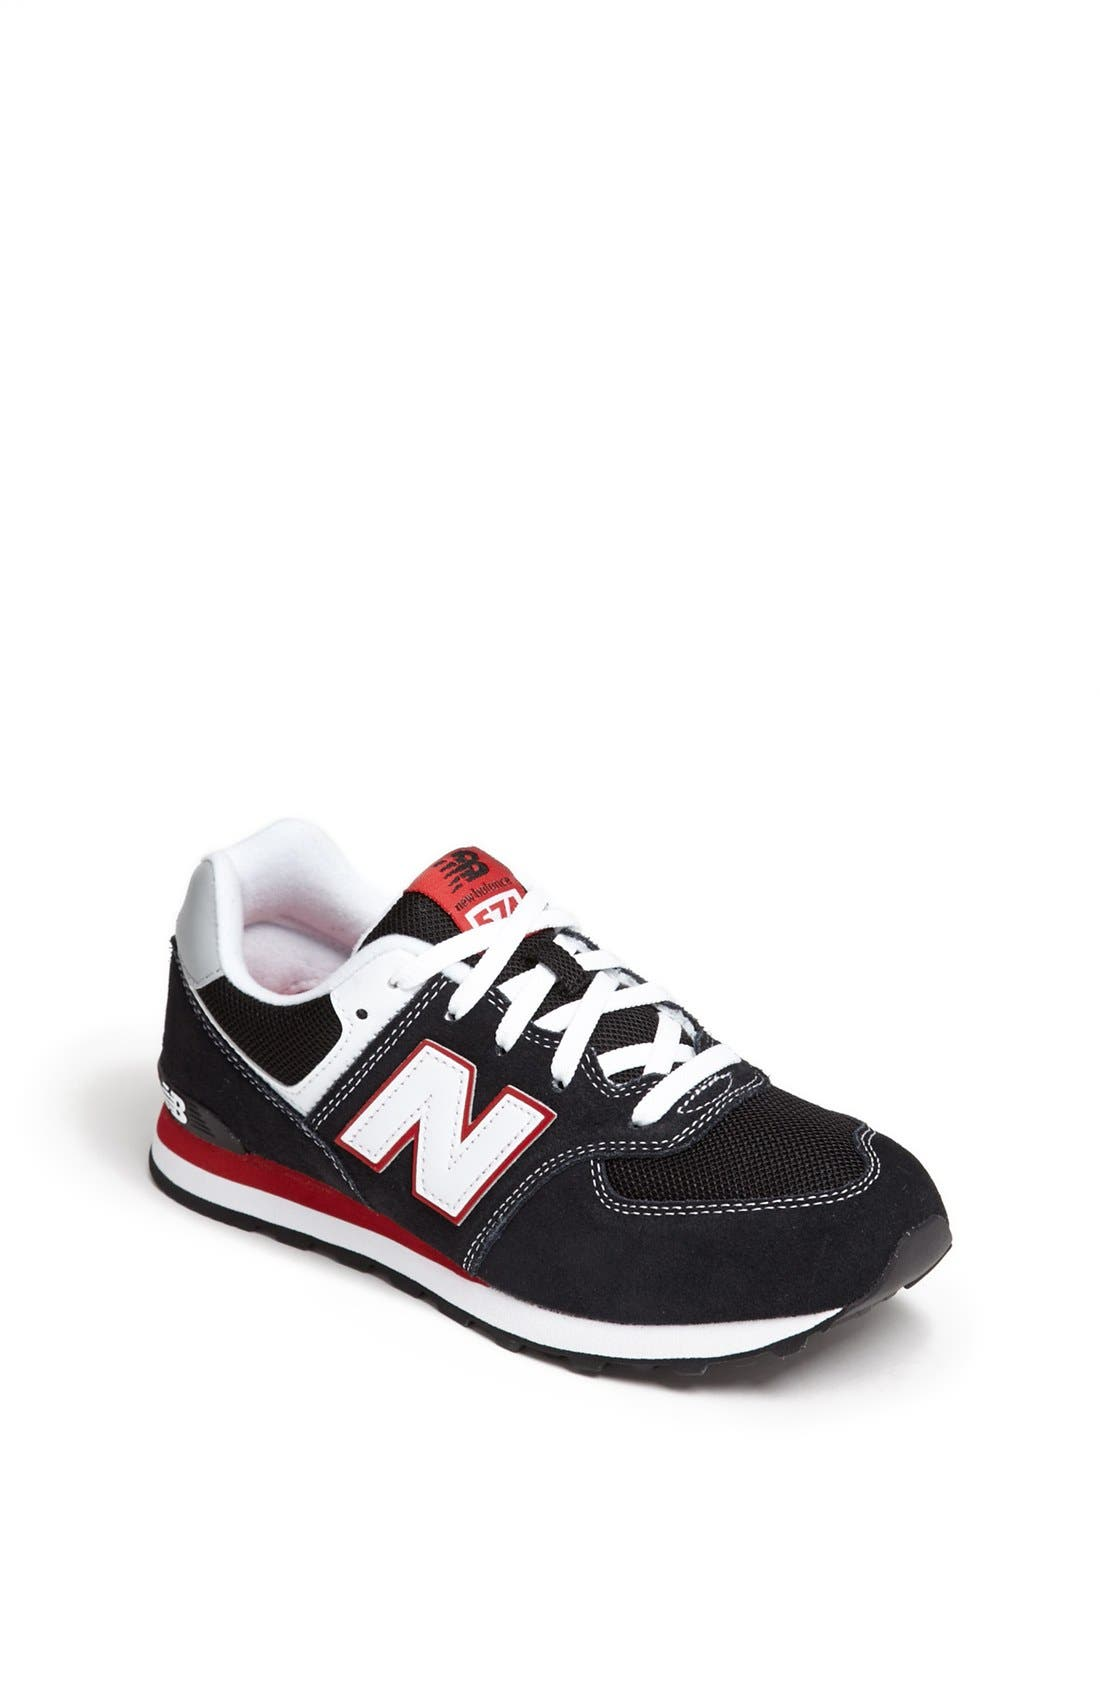 Main Image - New Balance '574 Classic' Sneaker (Baby, Walker, Toddler, Little Kid & Big Kid)